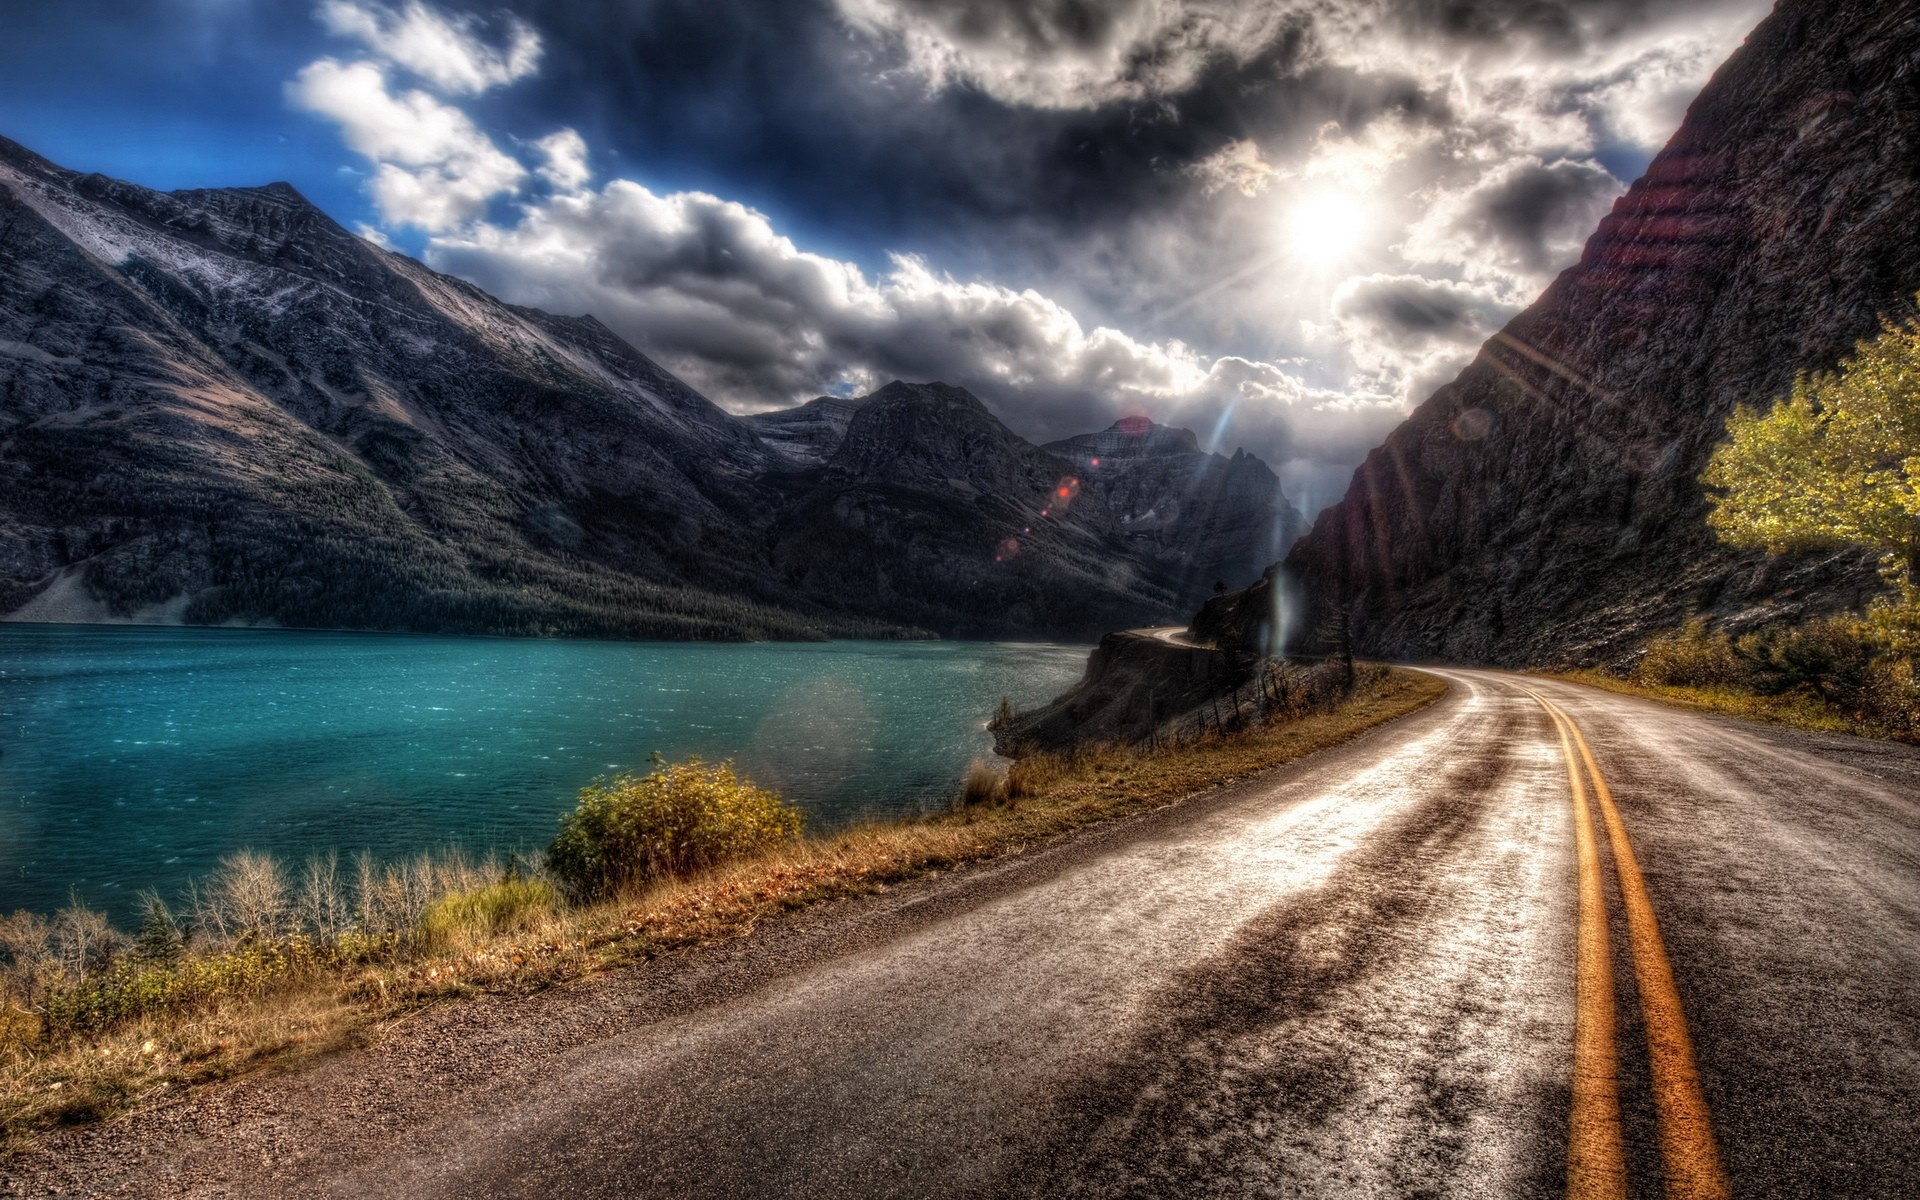 Amazing Mountain Road Wallpaper